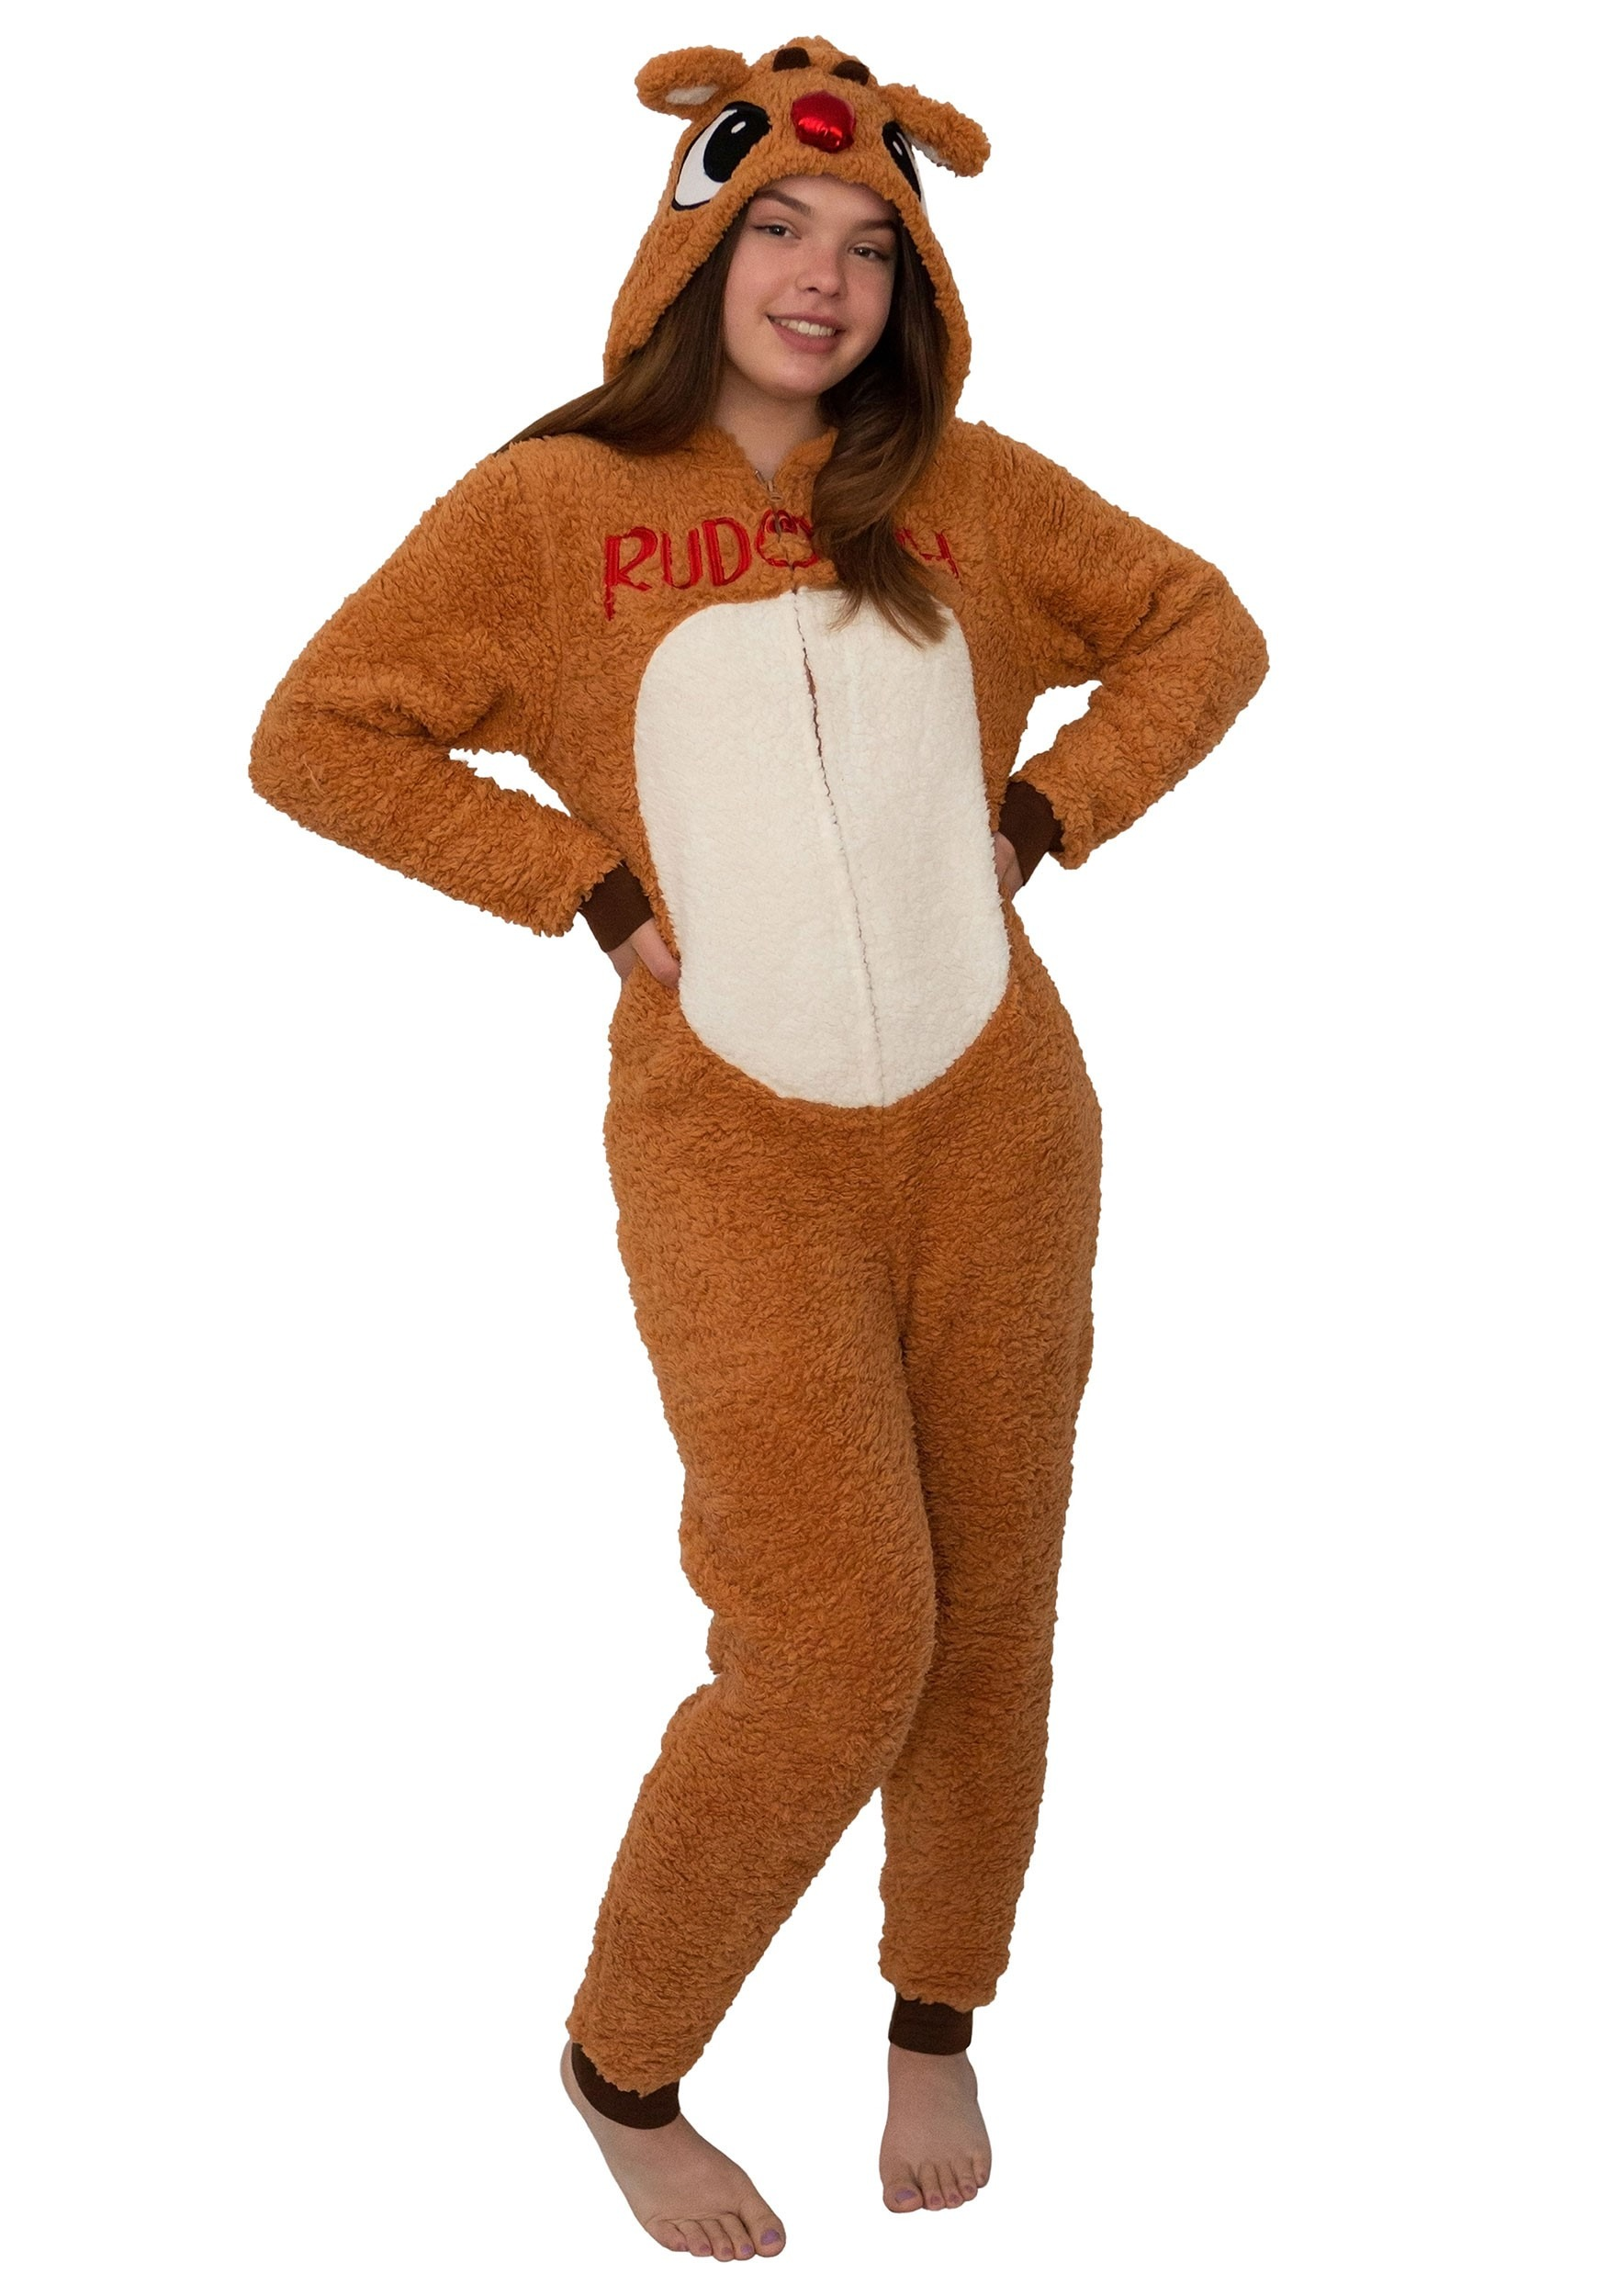 Rudolph the Reindeer Women's Rudolph Union Suit Costume